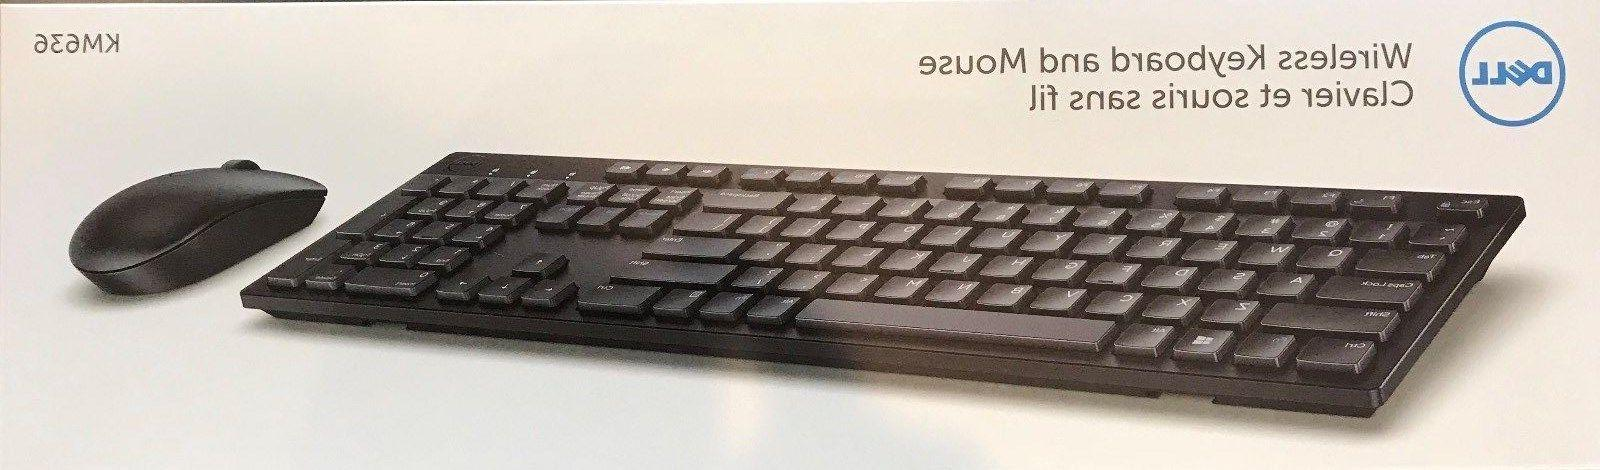 wireless keyboard mouse batteries dongle brand new. Black Bedroom Furniture Sets. Home Design Ideas